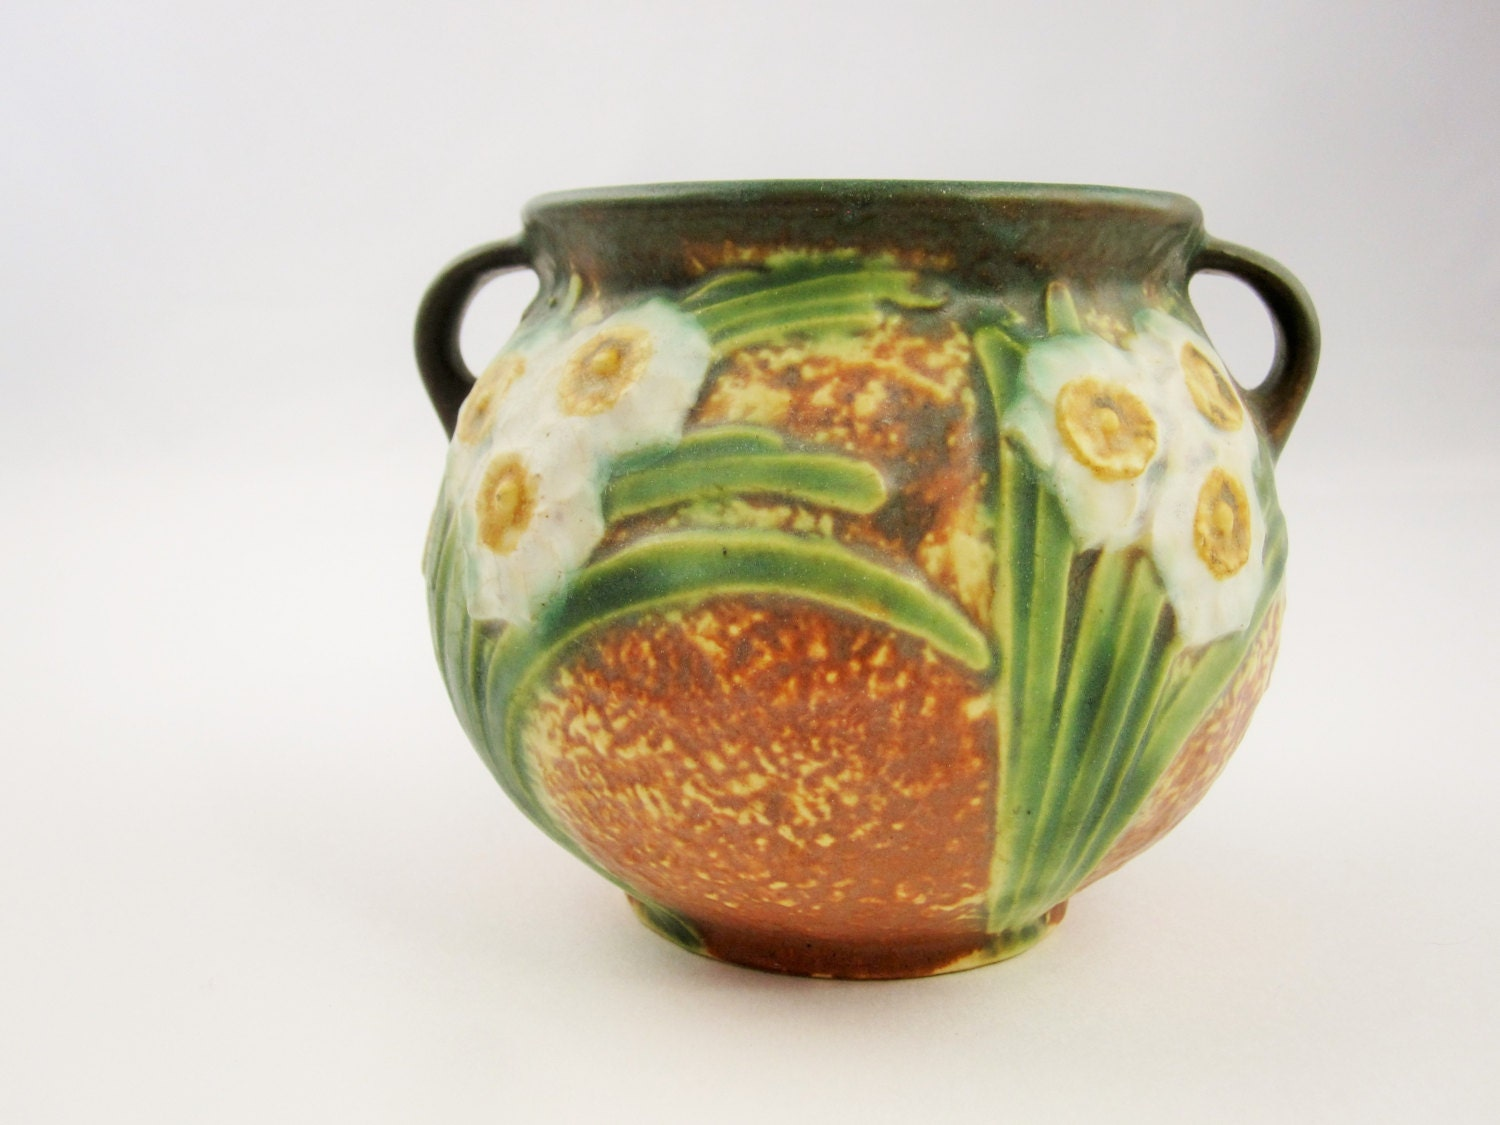 Roseville pottery 39 jonquil 39 pattern small planter for Pottery patterns